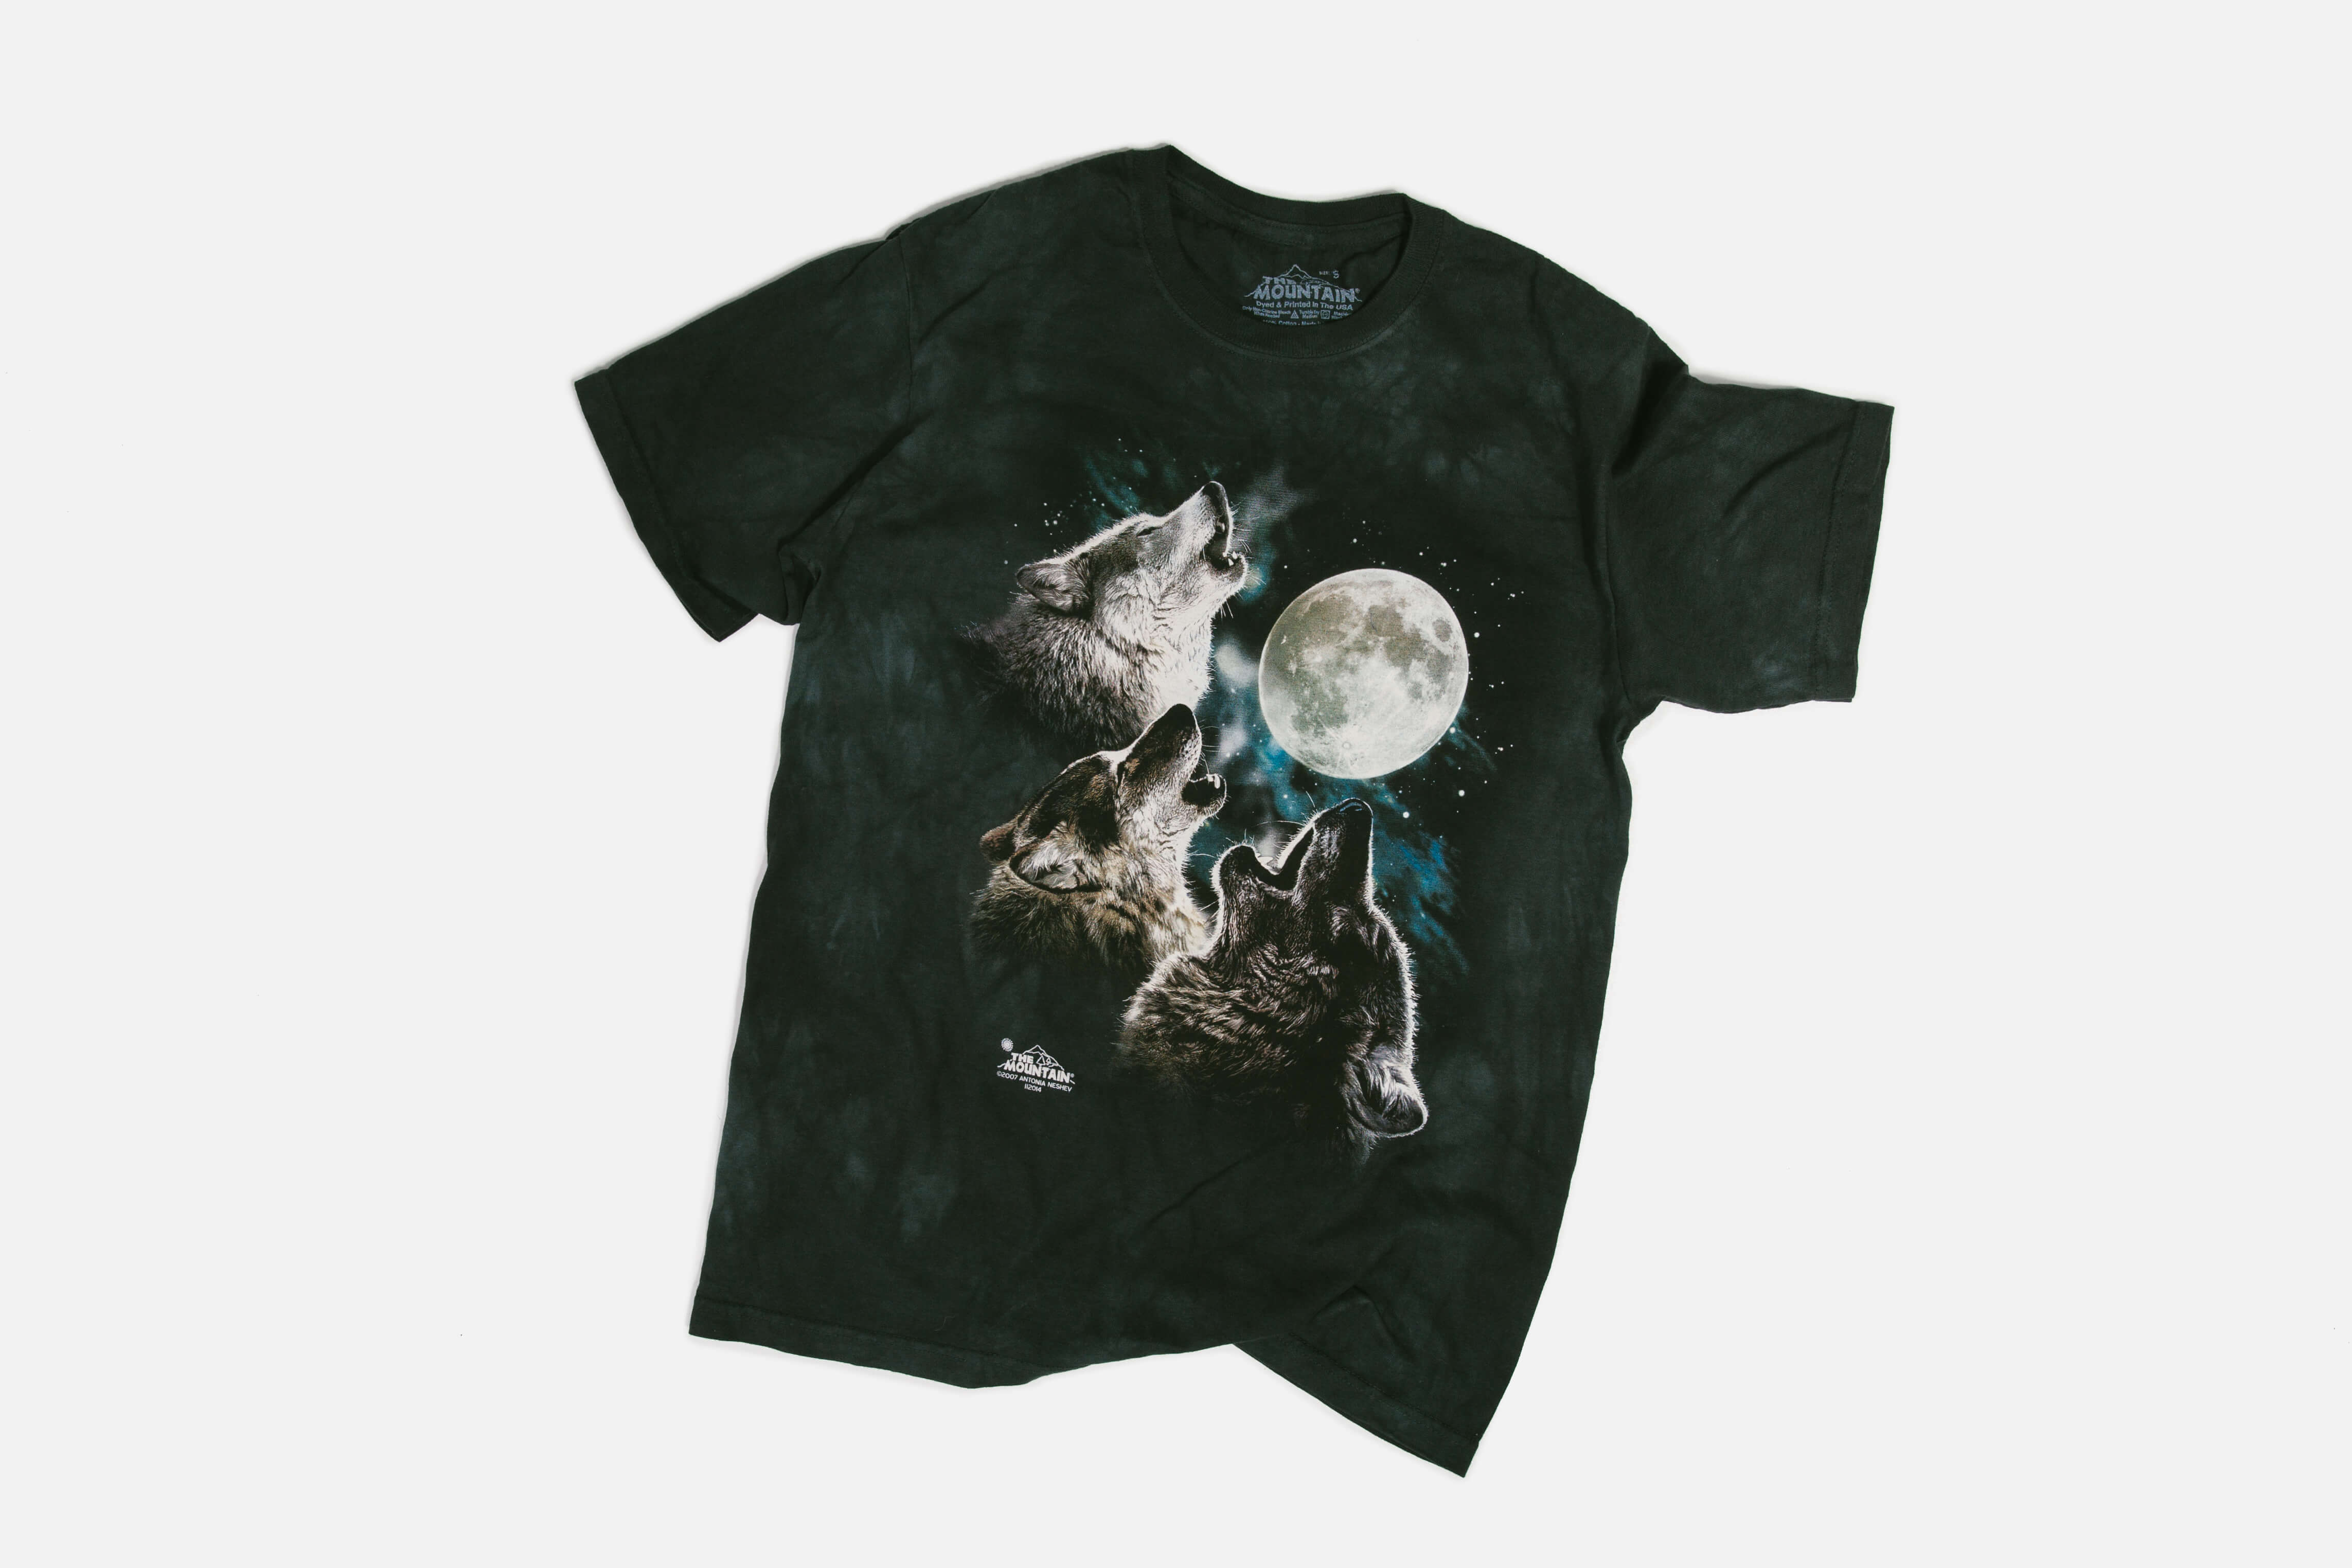 7f003451 Three Wolf Moon. What a story. It all started back in November 2008 with a  zany review by a student at Rutgers University. He didn't actually own the  shirt… ...